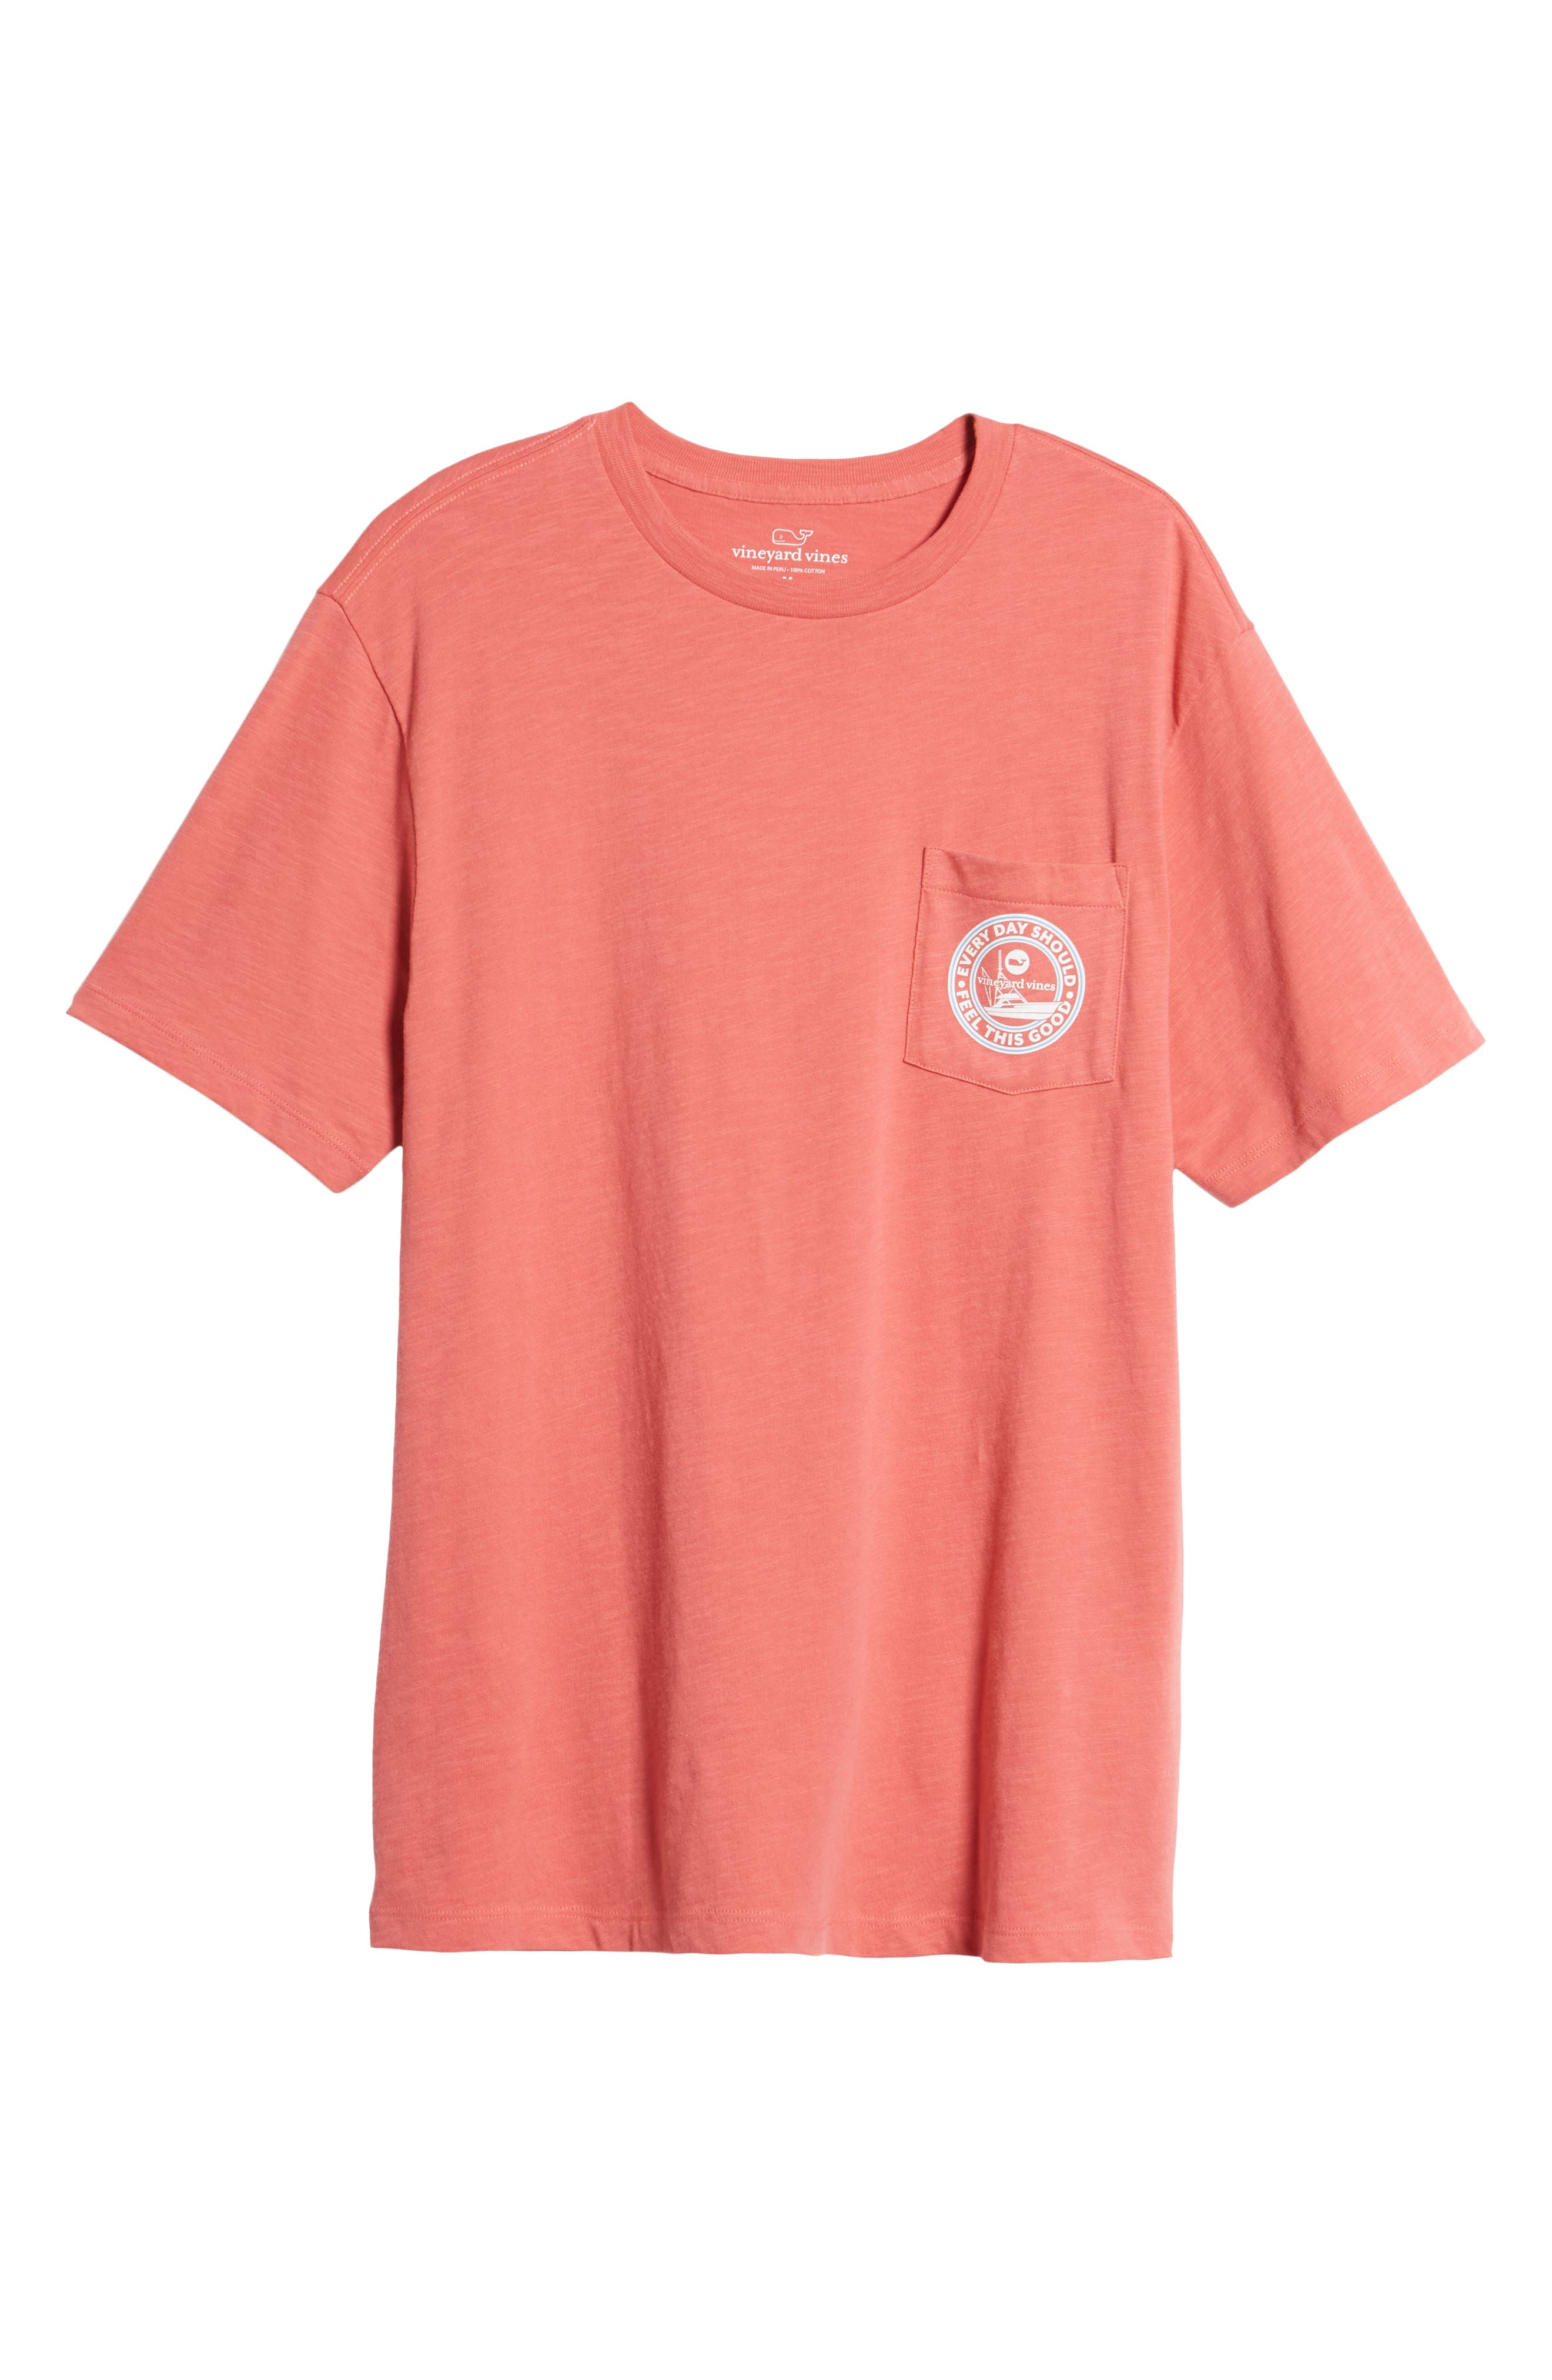 Every Day Should Feel This Good Pocket T-Shirt,                             Alternate thumbnail 6, color,